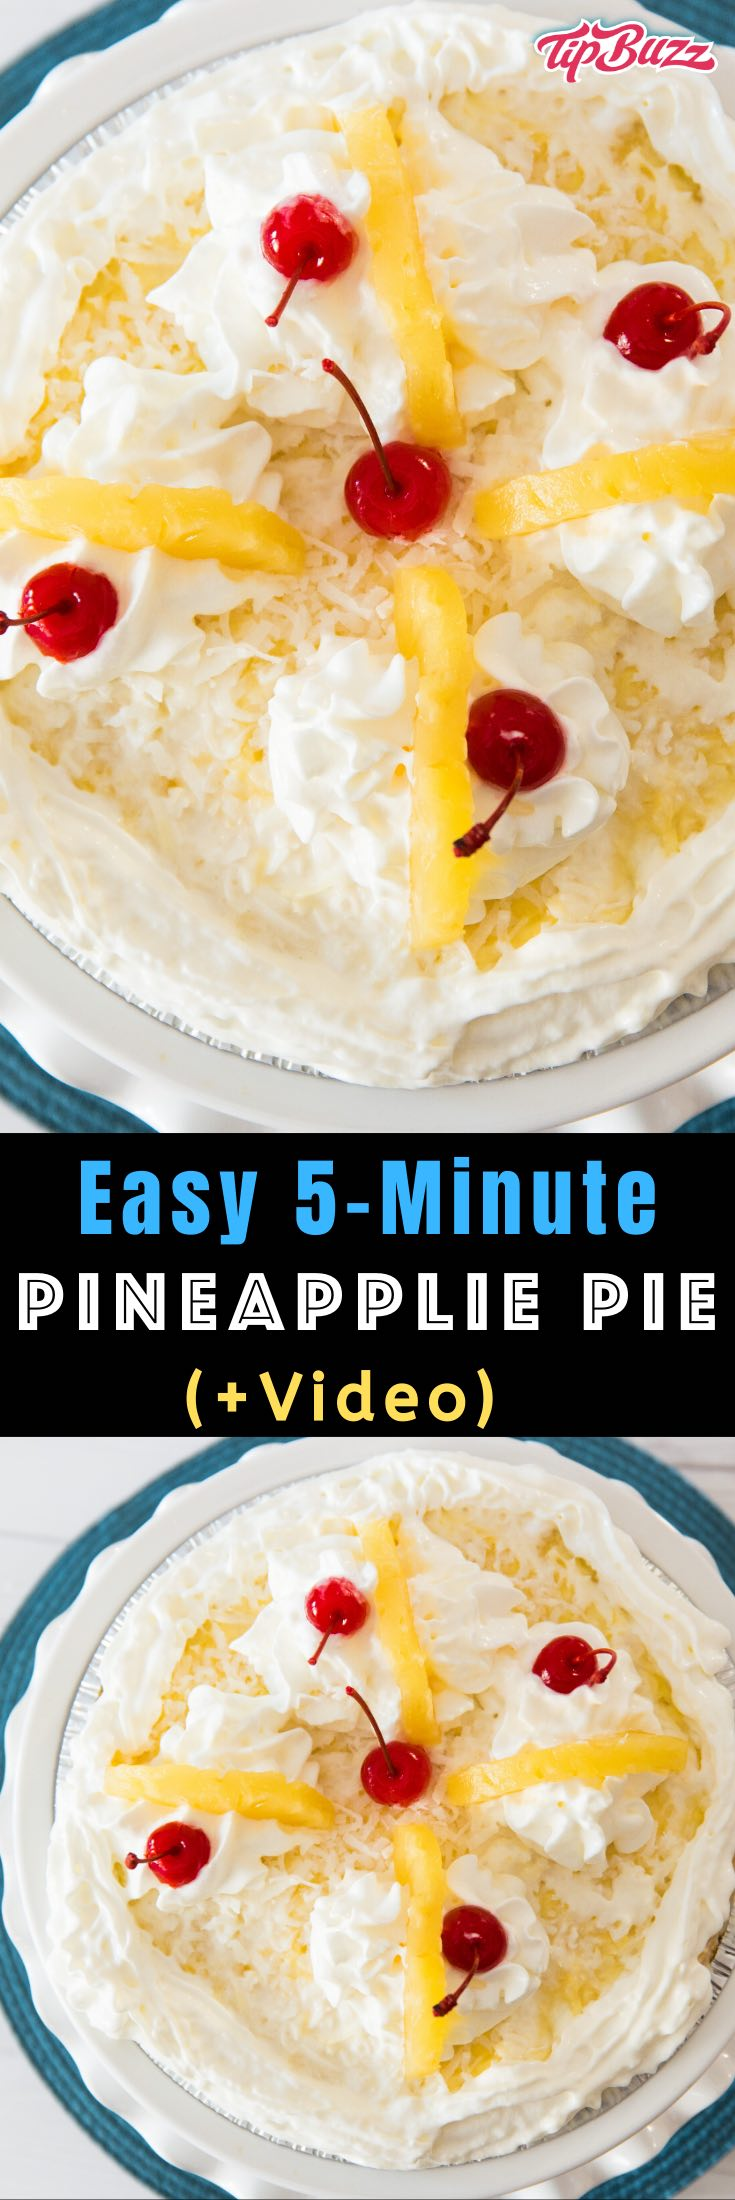 Easy Pineapple Pie is so creamy and refreshing! It only takes a few minutes to prepare this stunning, no-bake dessert that's loaded with tropical flavors!